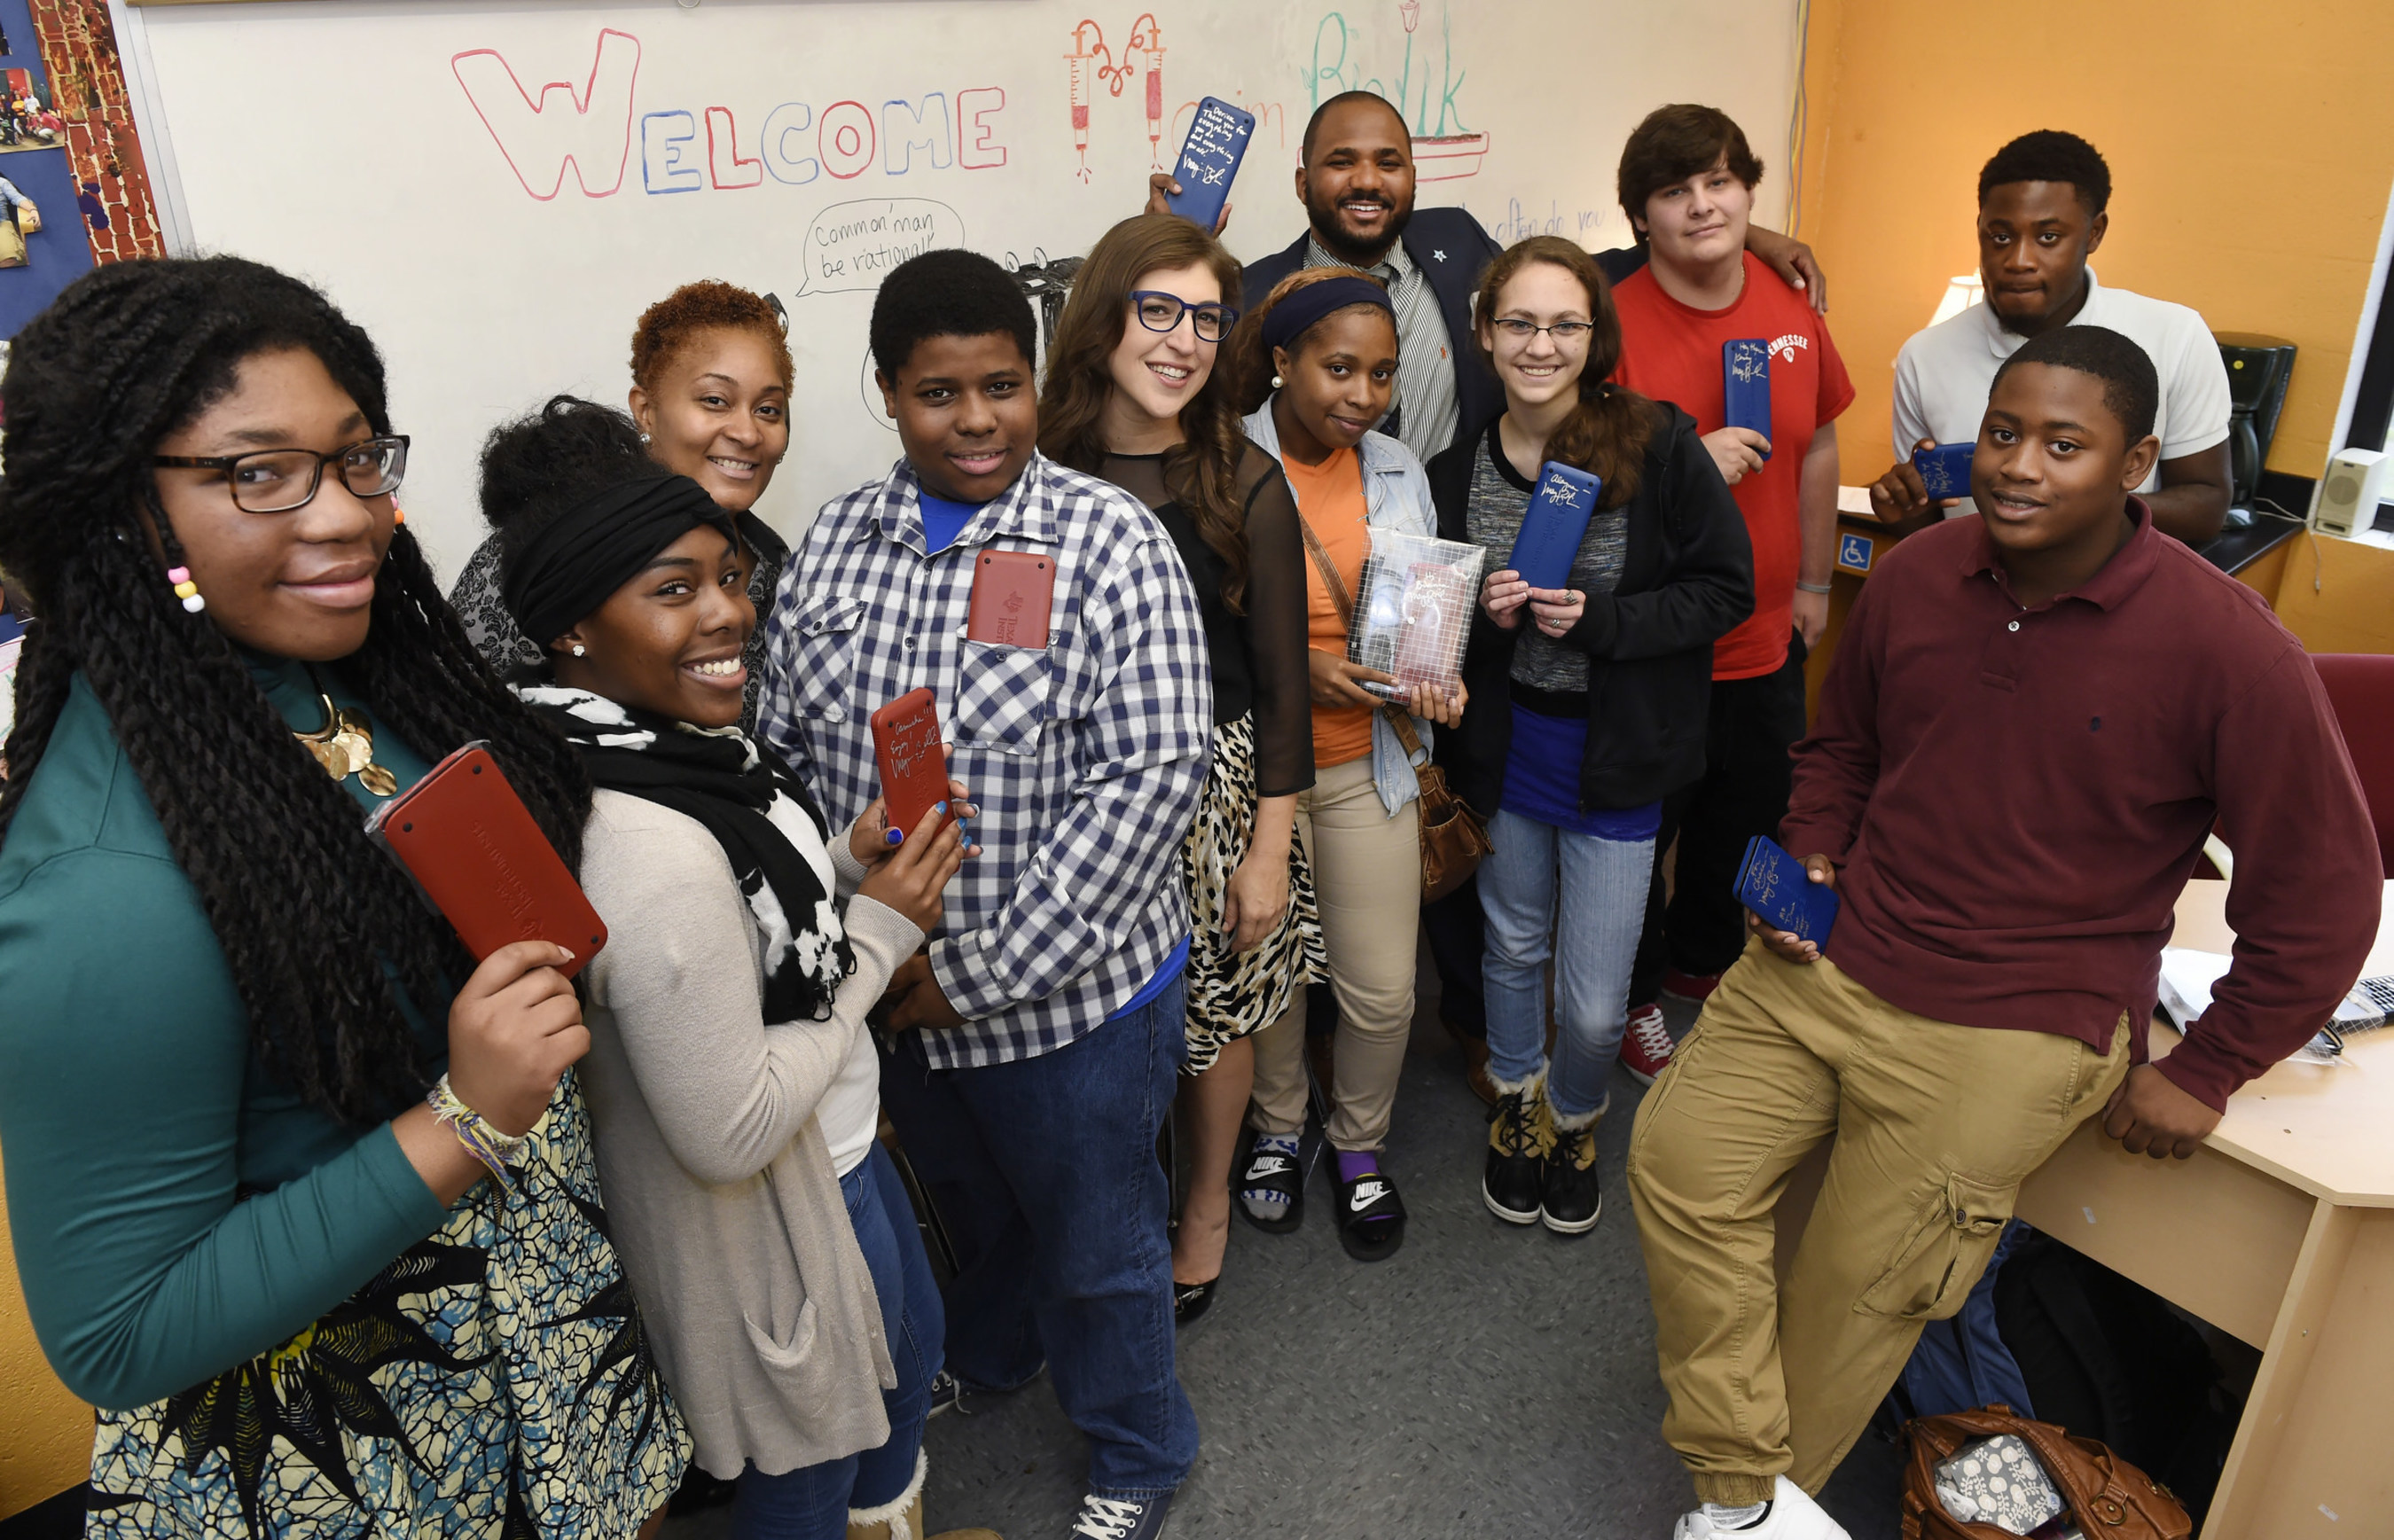 Nashville school wins celebrity classroom visit by showing calculator love